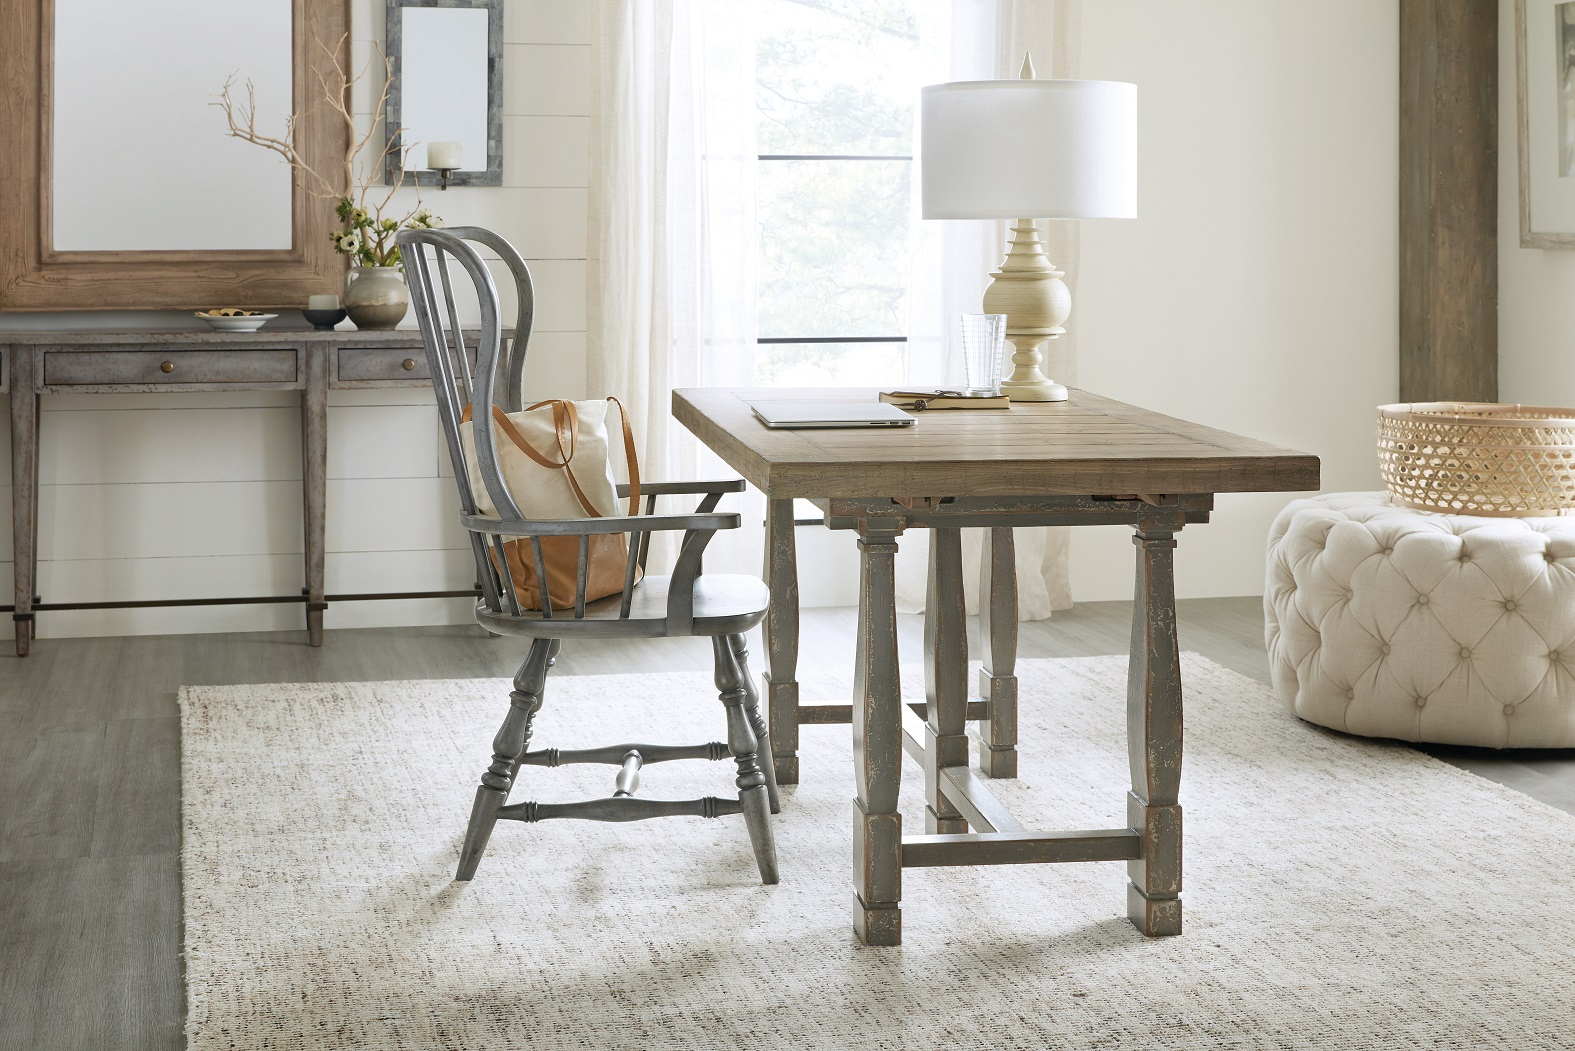 Hooker Furniture Ciao Bella Friendship table